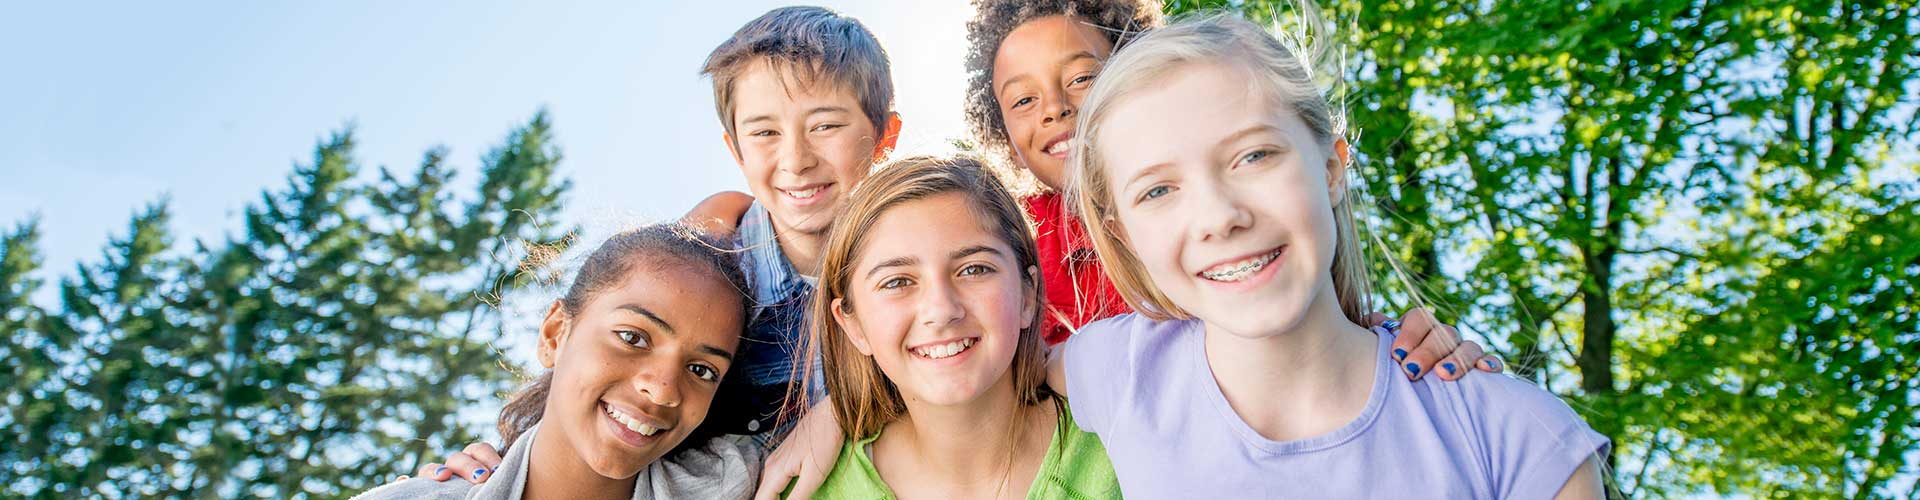 About Orthodontics at Optimal Orthodontics of Humble in Humble TX